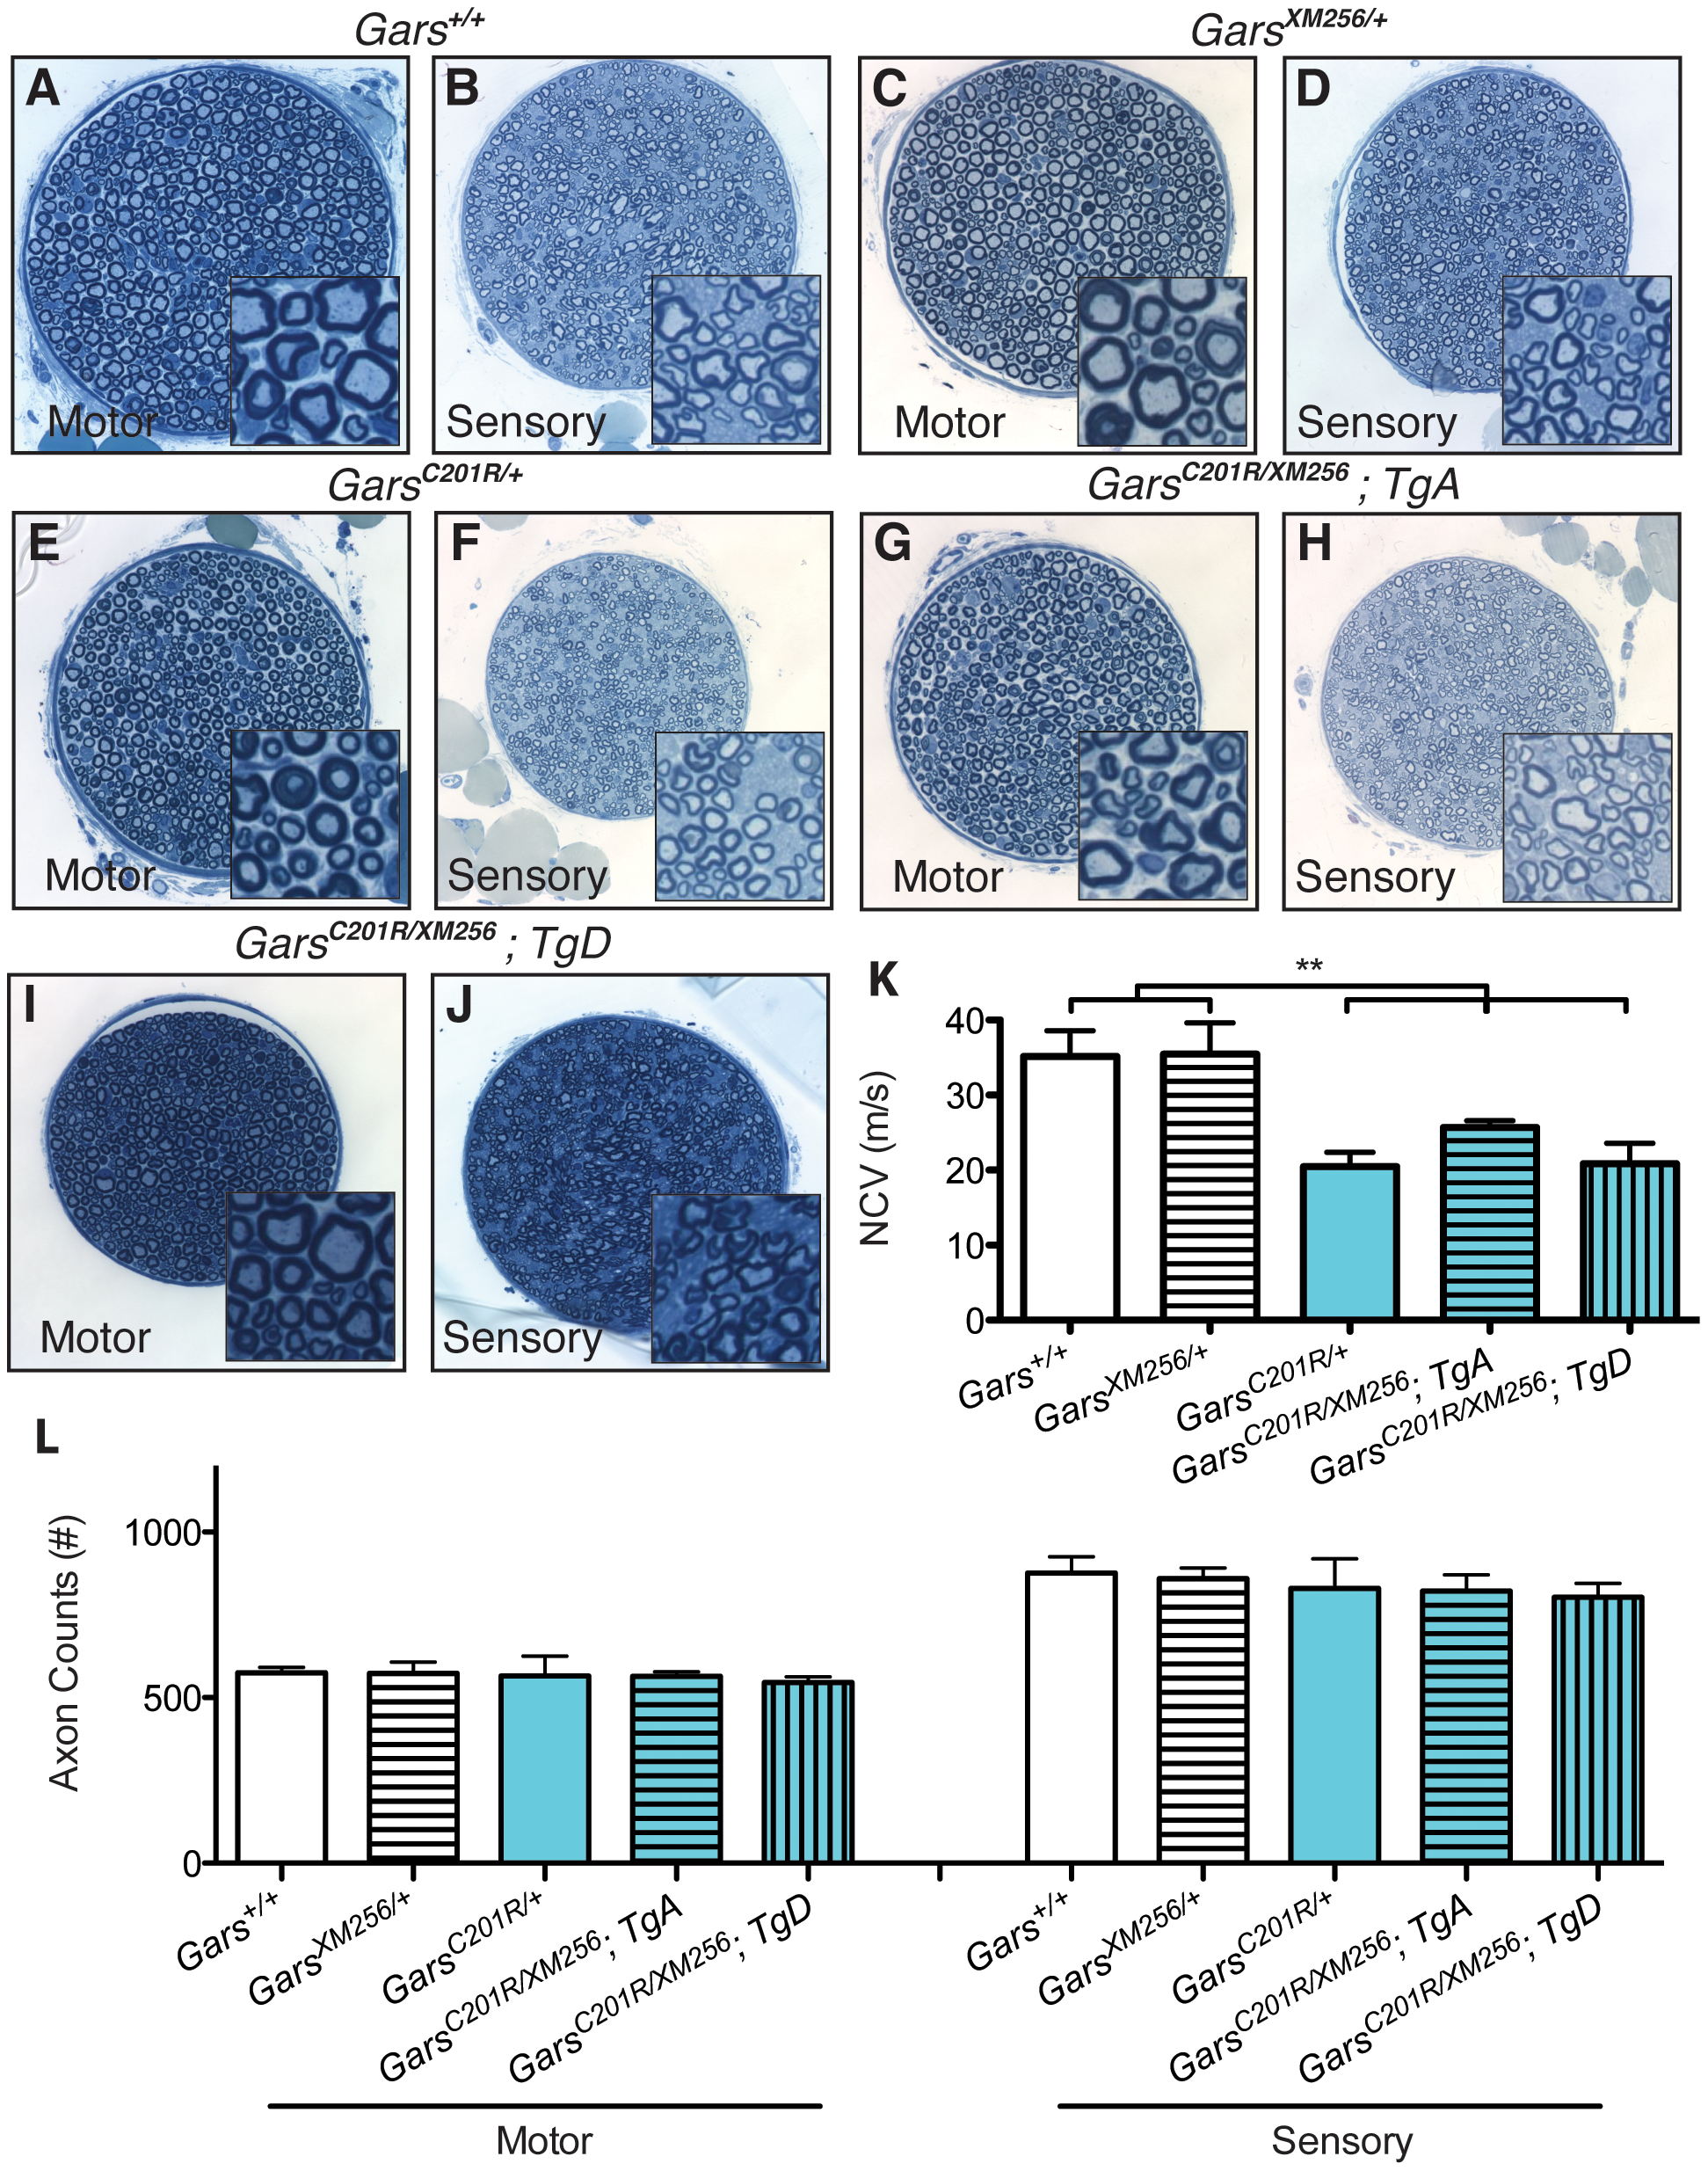 Transgenes A and D restore viability to <i>C201R/XM256</i> mice.